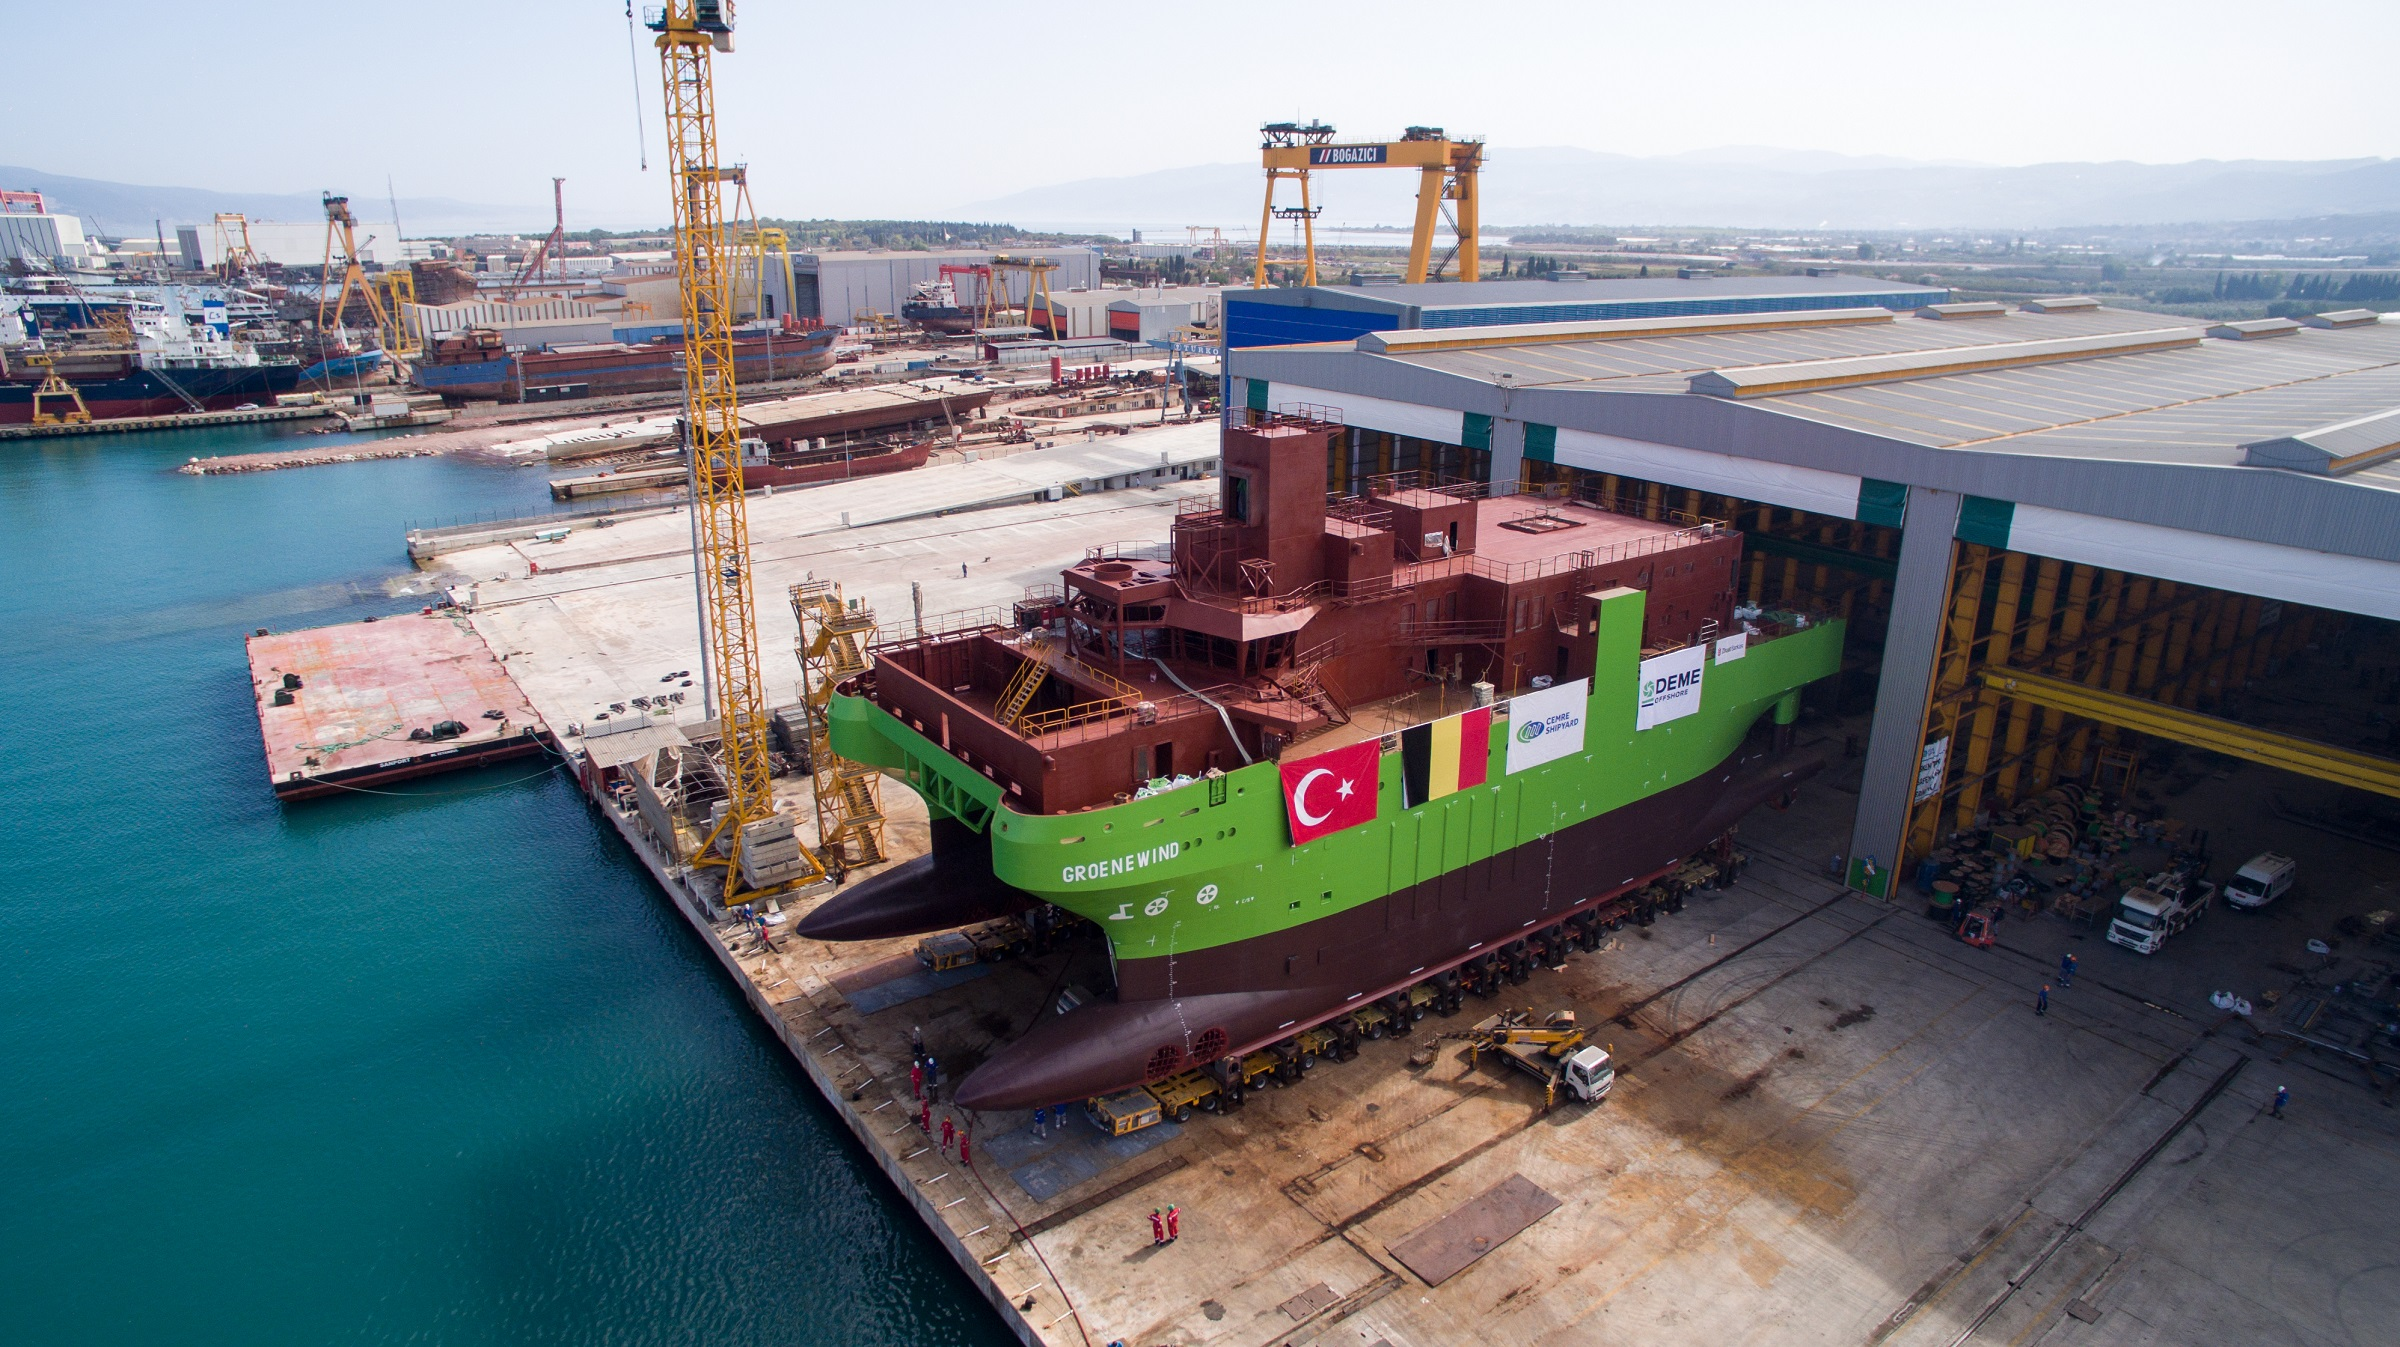 Launch of DEME's first ever Service Operation Vessel 'Groene Wind'